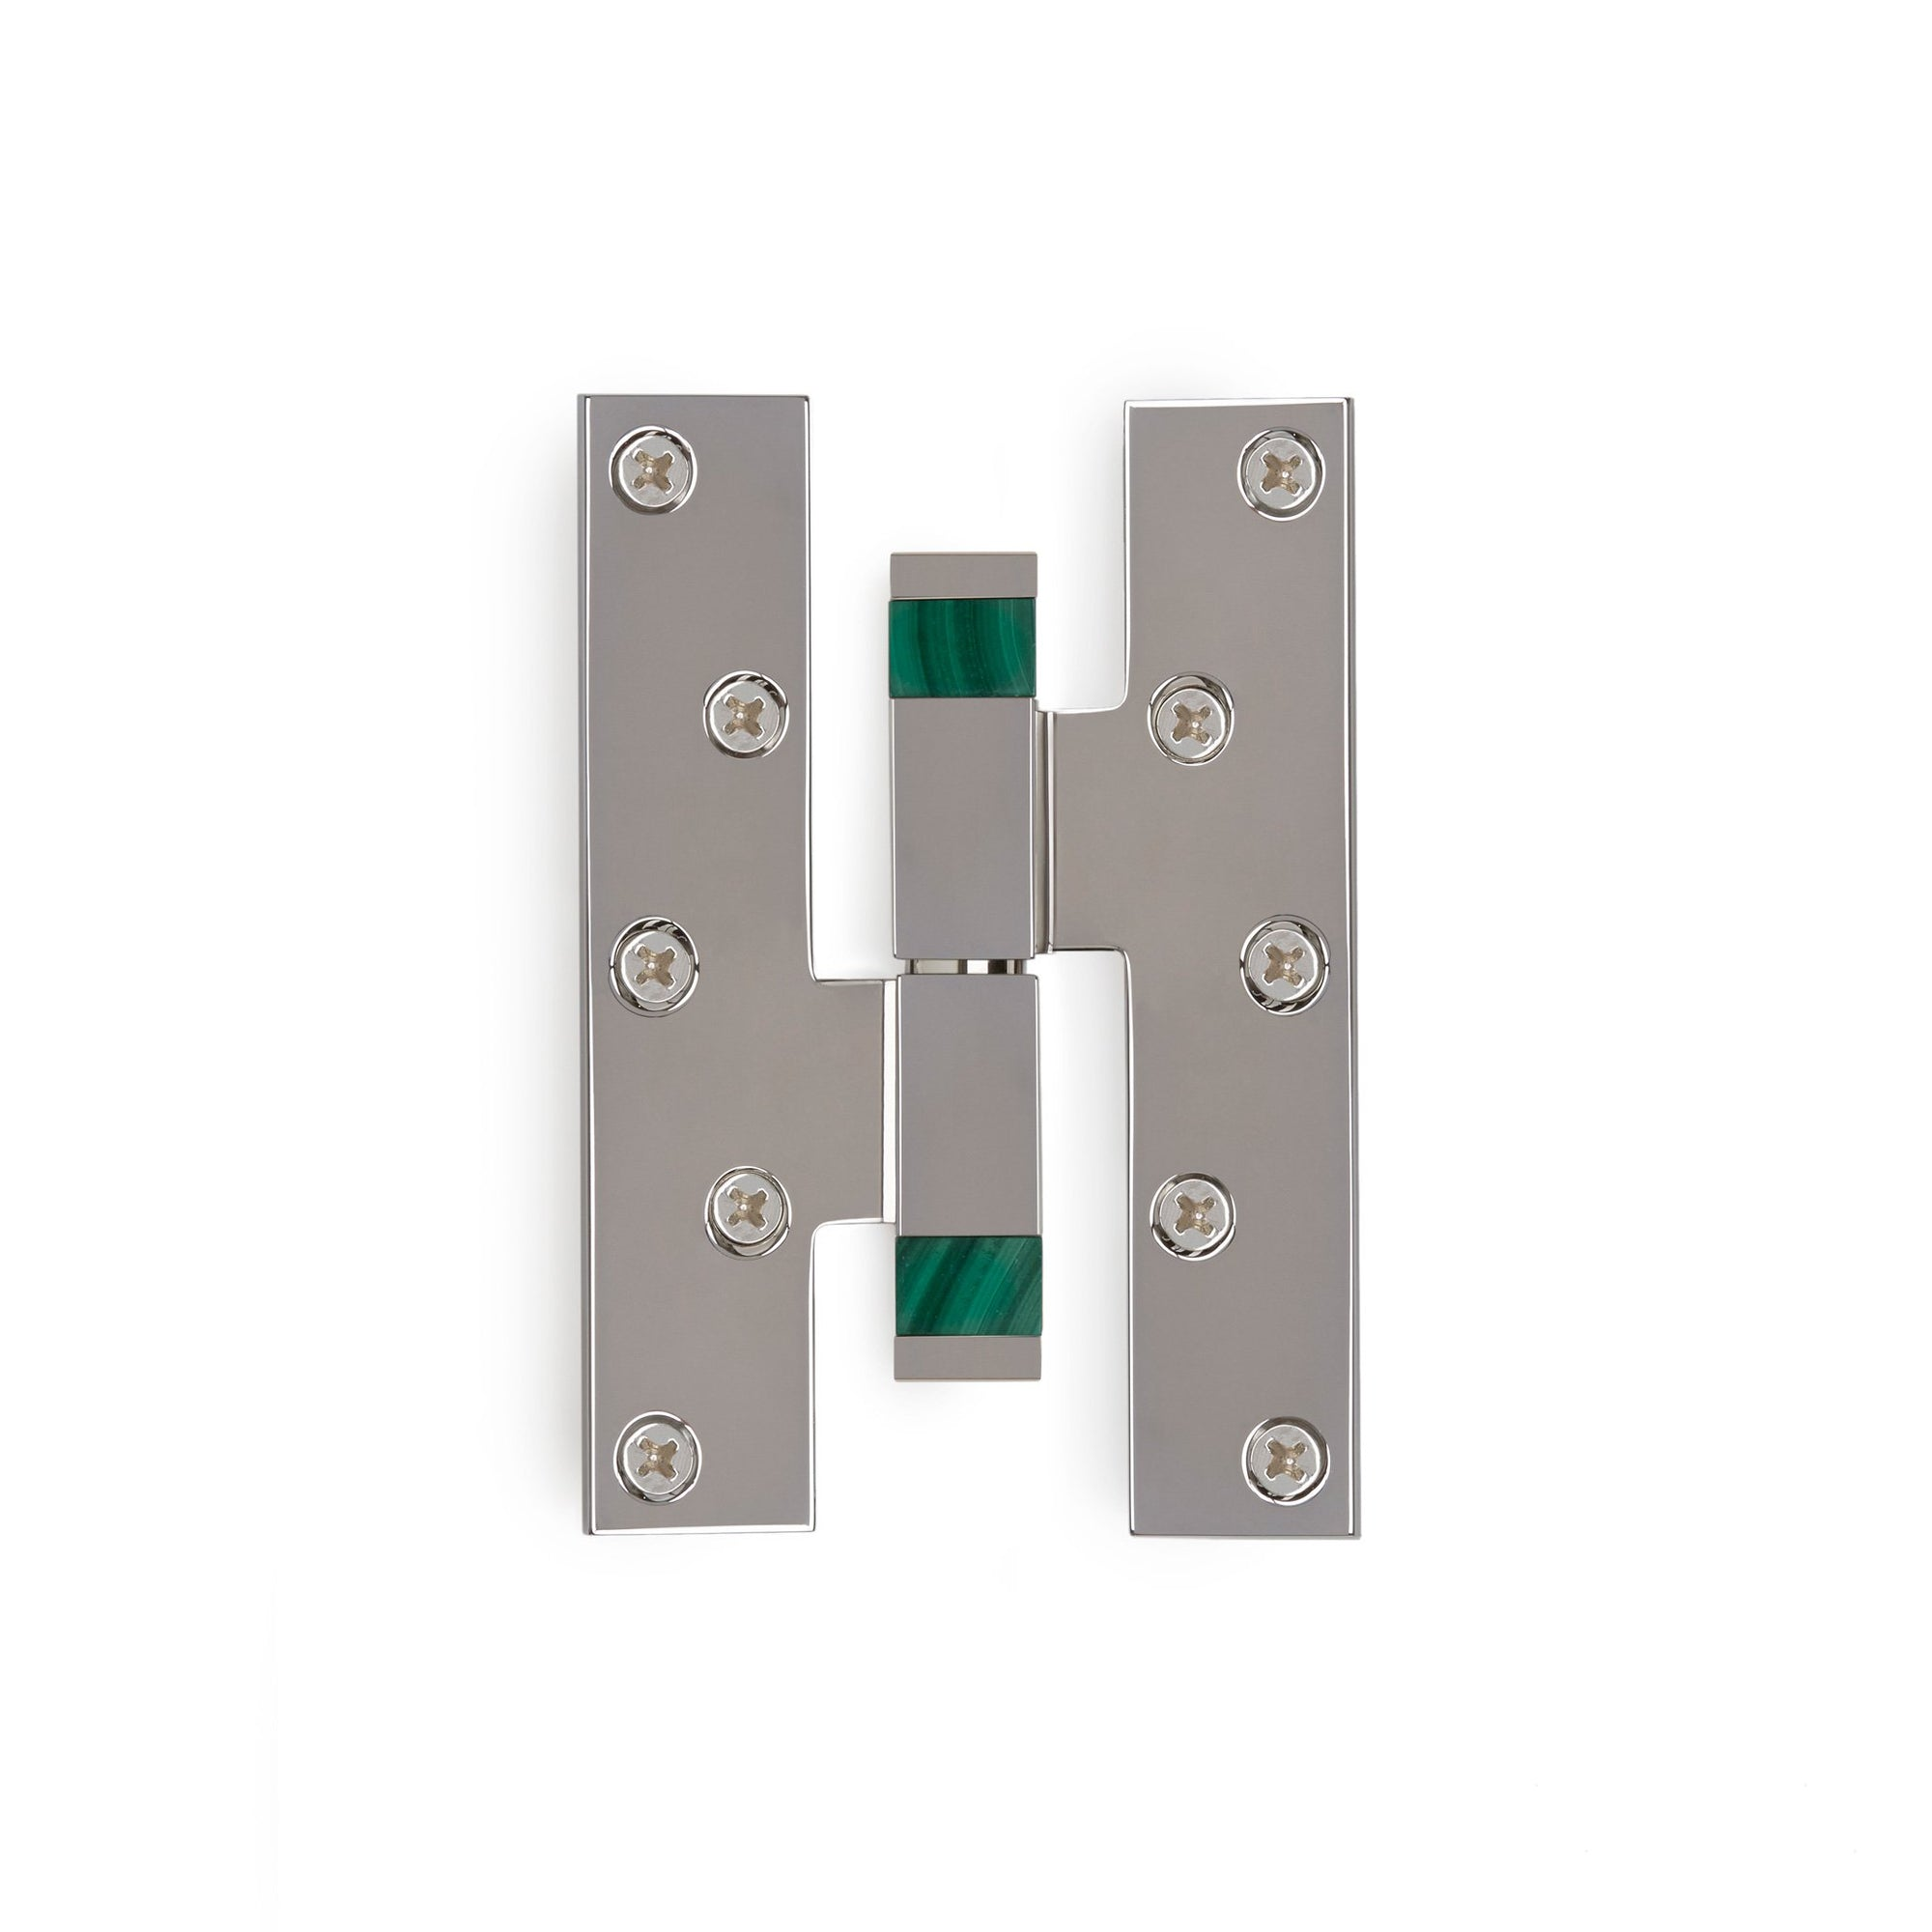 2002-HNGE-SQ-MALA-HD-ZZ-CP Sherle Wagner International Malachite Insert Modern Square Paumelle Hinge in Polished Chrome metal finish